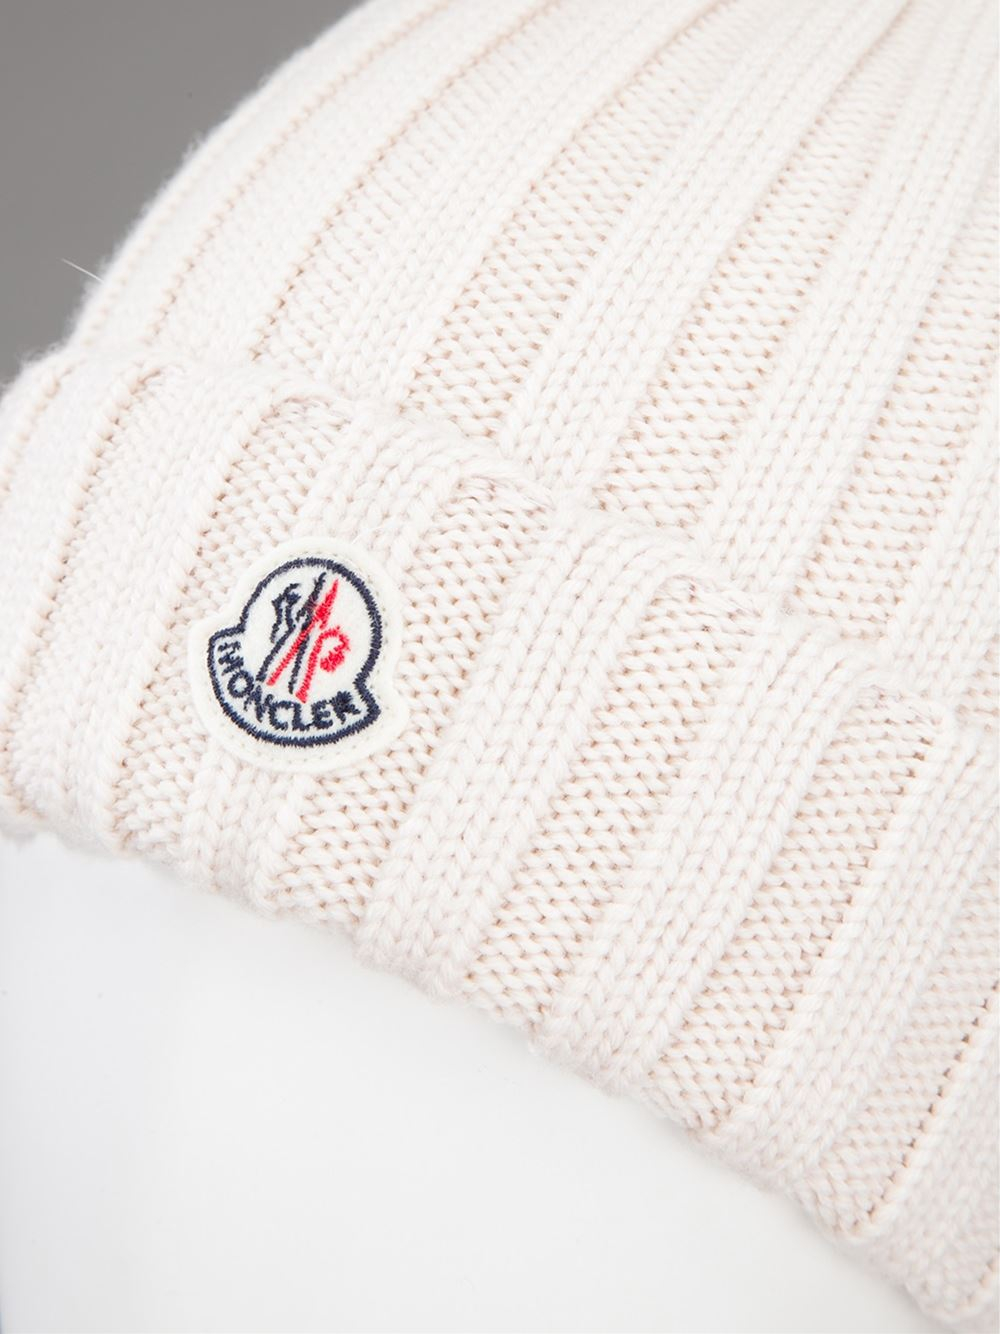 Lyst - Moncler Ribbed Knit Beanie Hat in Natural 2d3b0b82cd3